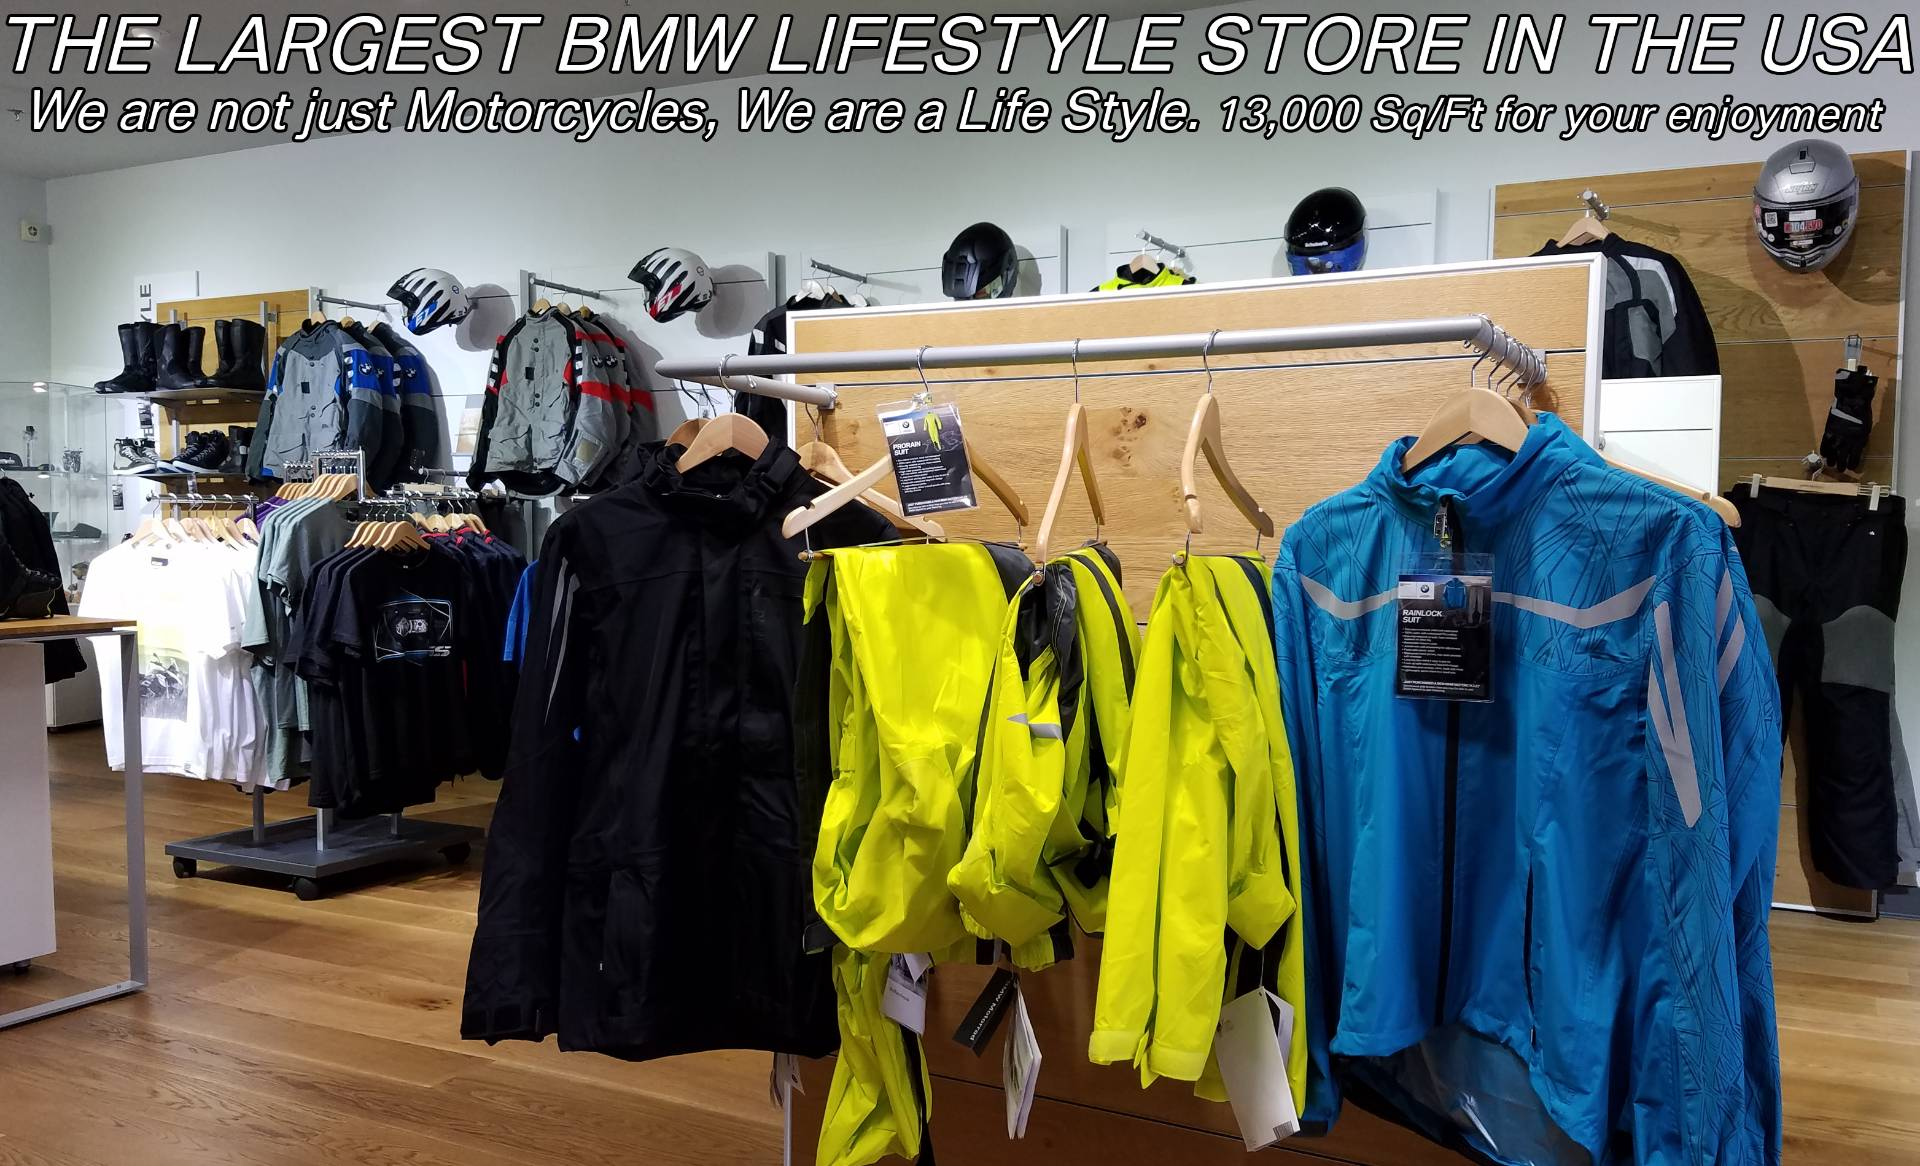 New 2019 BMW R 1250 GS for sale, BMW for sale R 1250GS, BMW Motorcycle R1250GS, new BMW 1250GS, R1250GS, BMW. BMW Motorcycles of Miami, Motorcycles of Miami - Photo 68